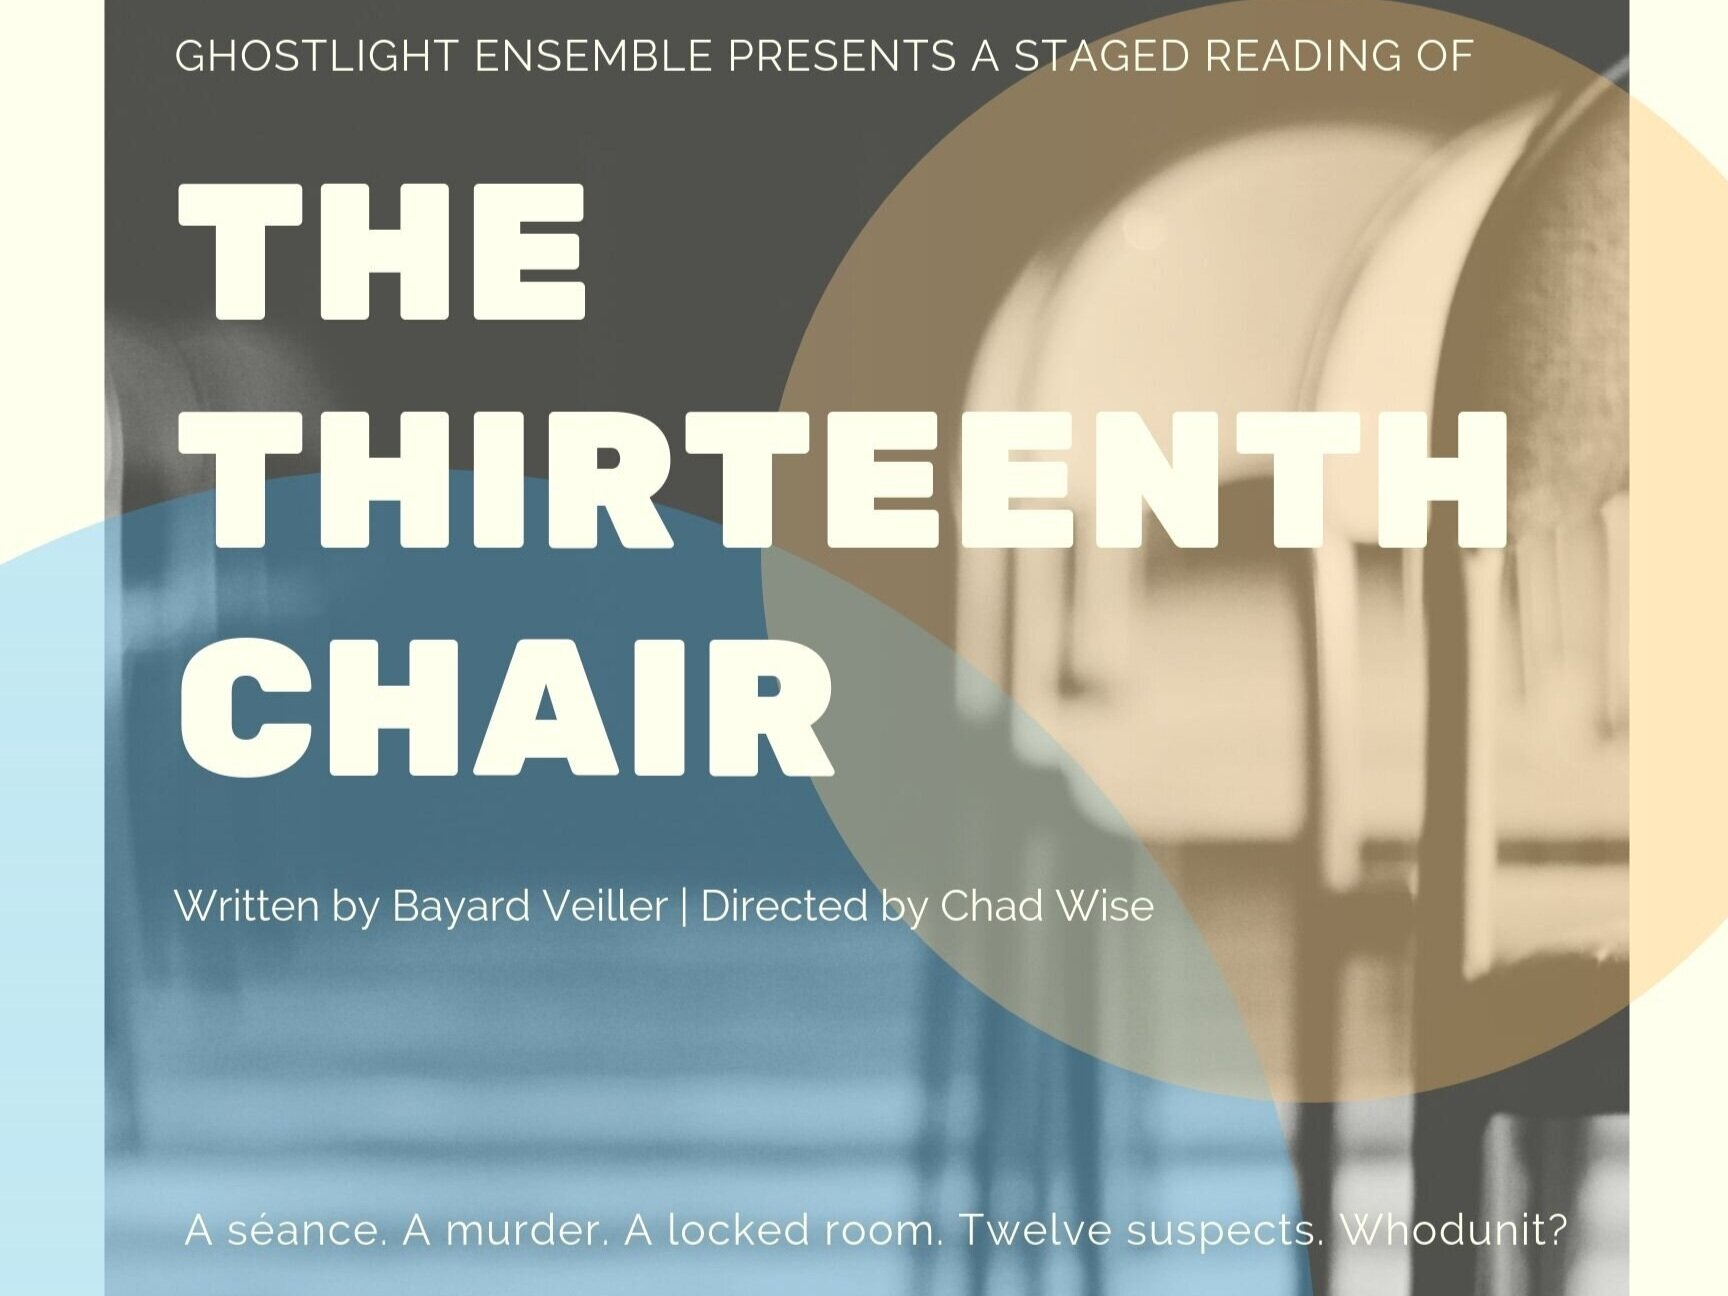 Ghostlight presents a staged reading of The Thirteenth Chair